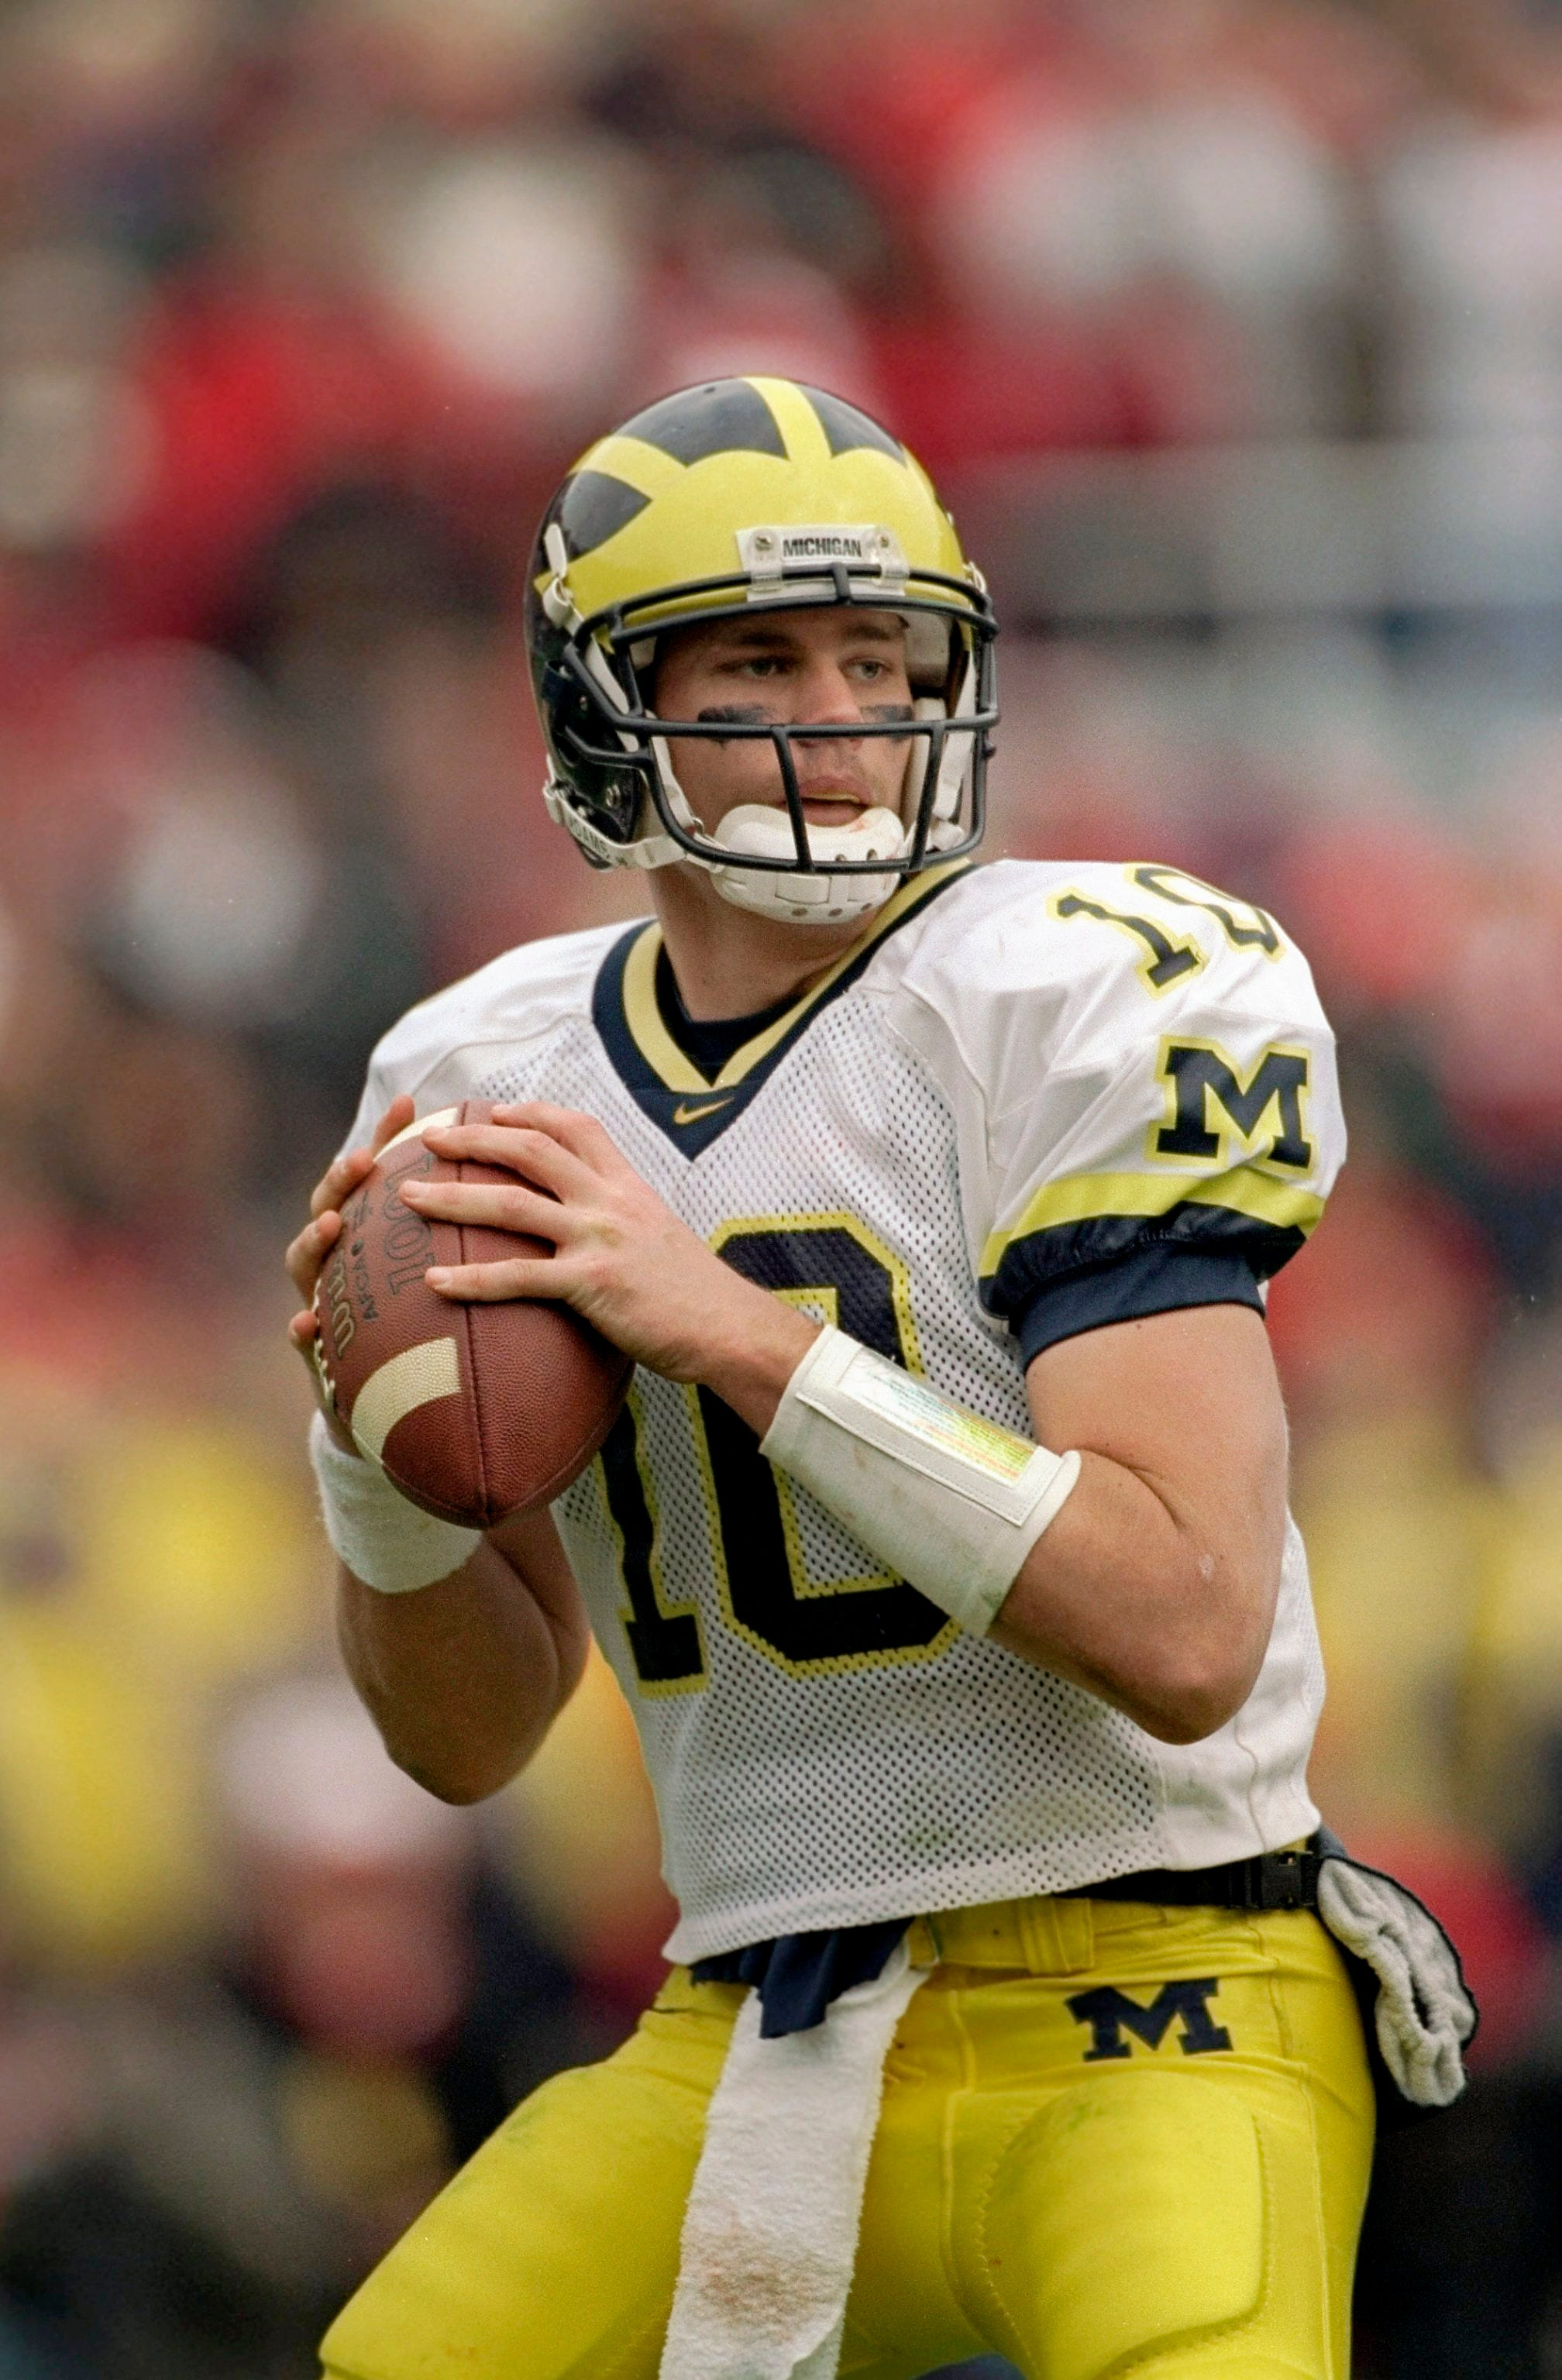 Tom Brady says he learned to be 'all about the team' at Michigan